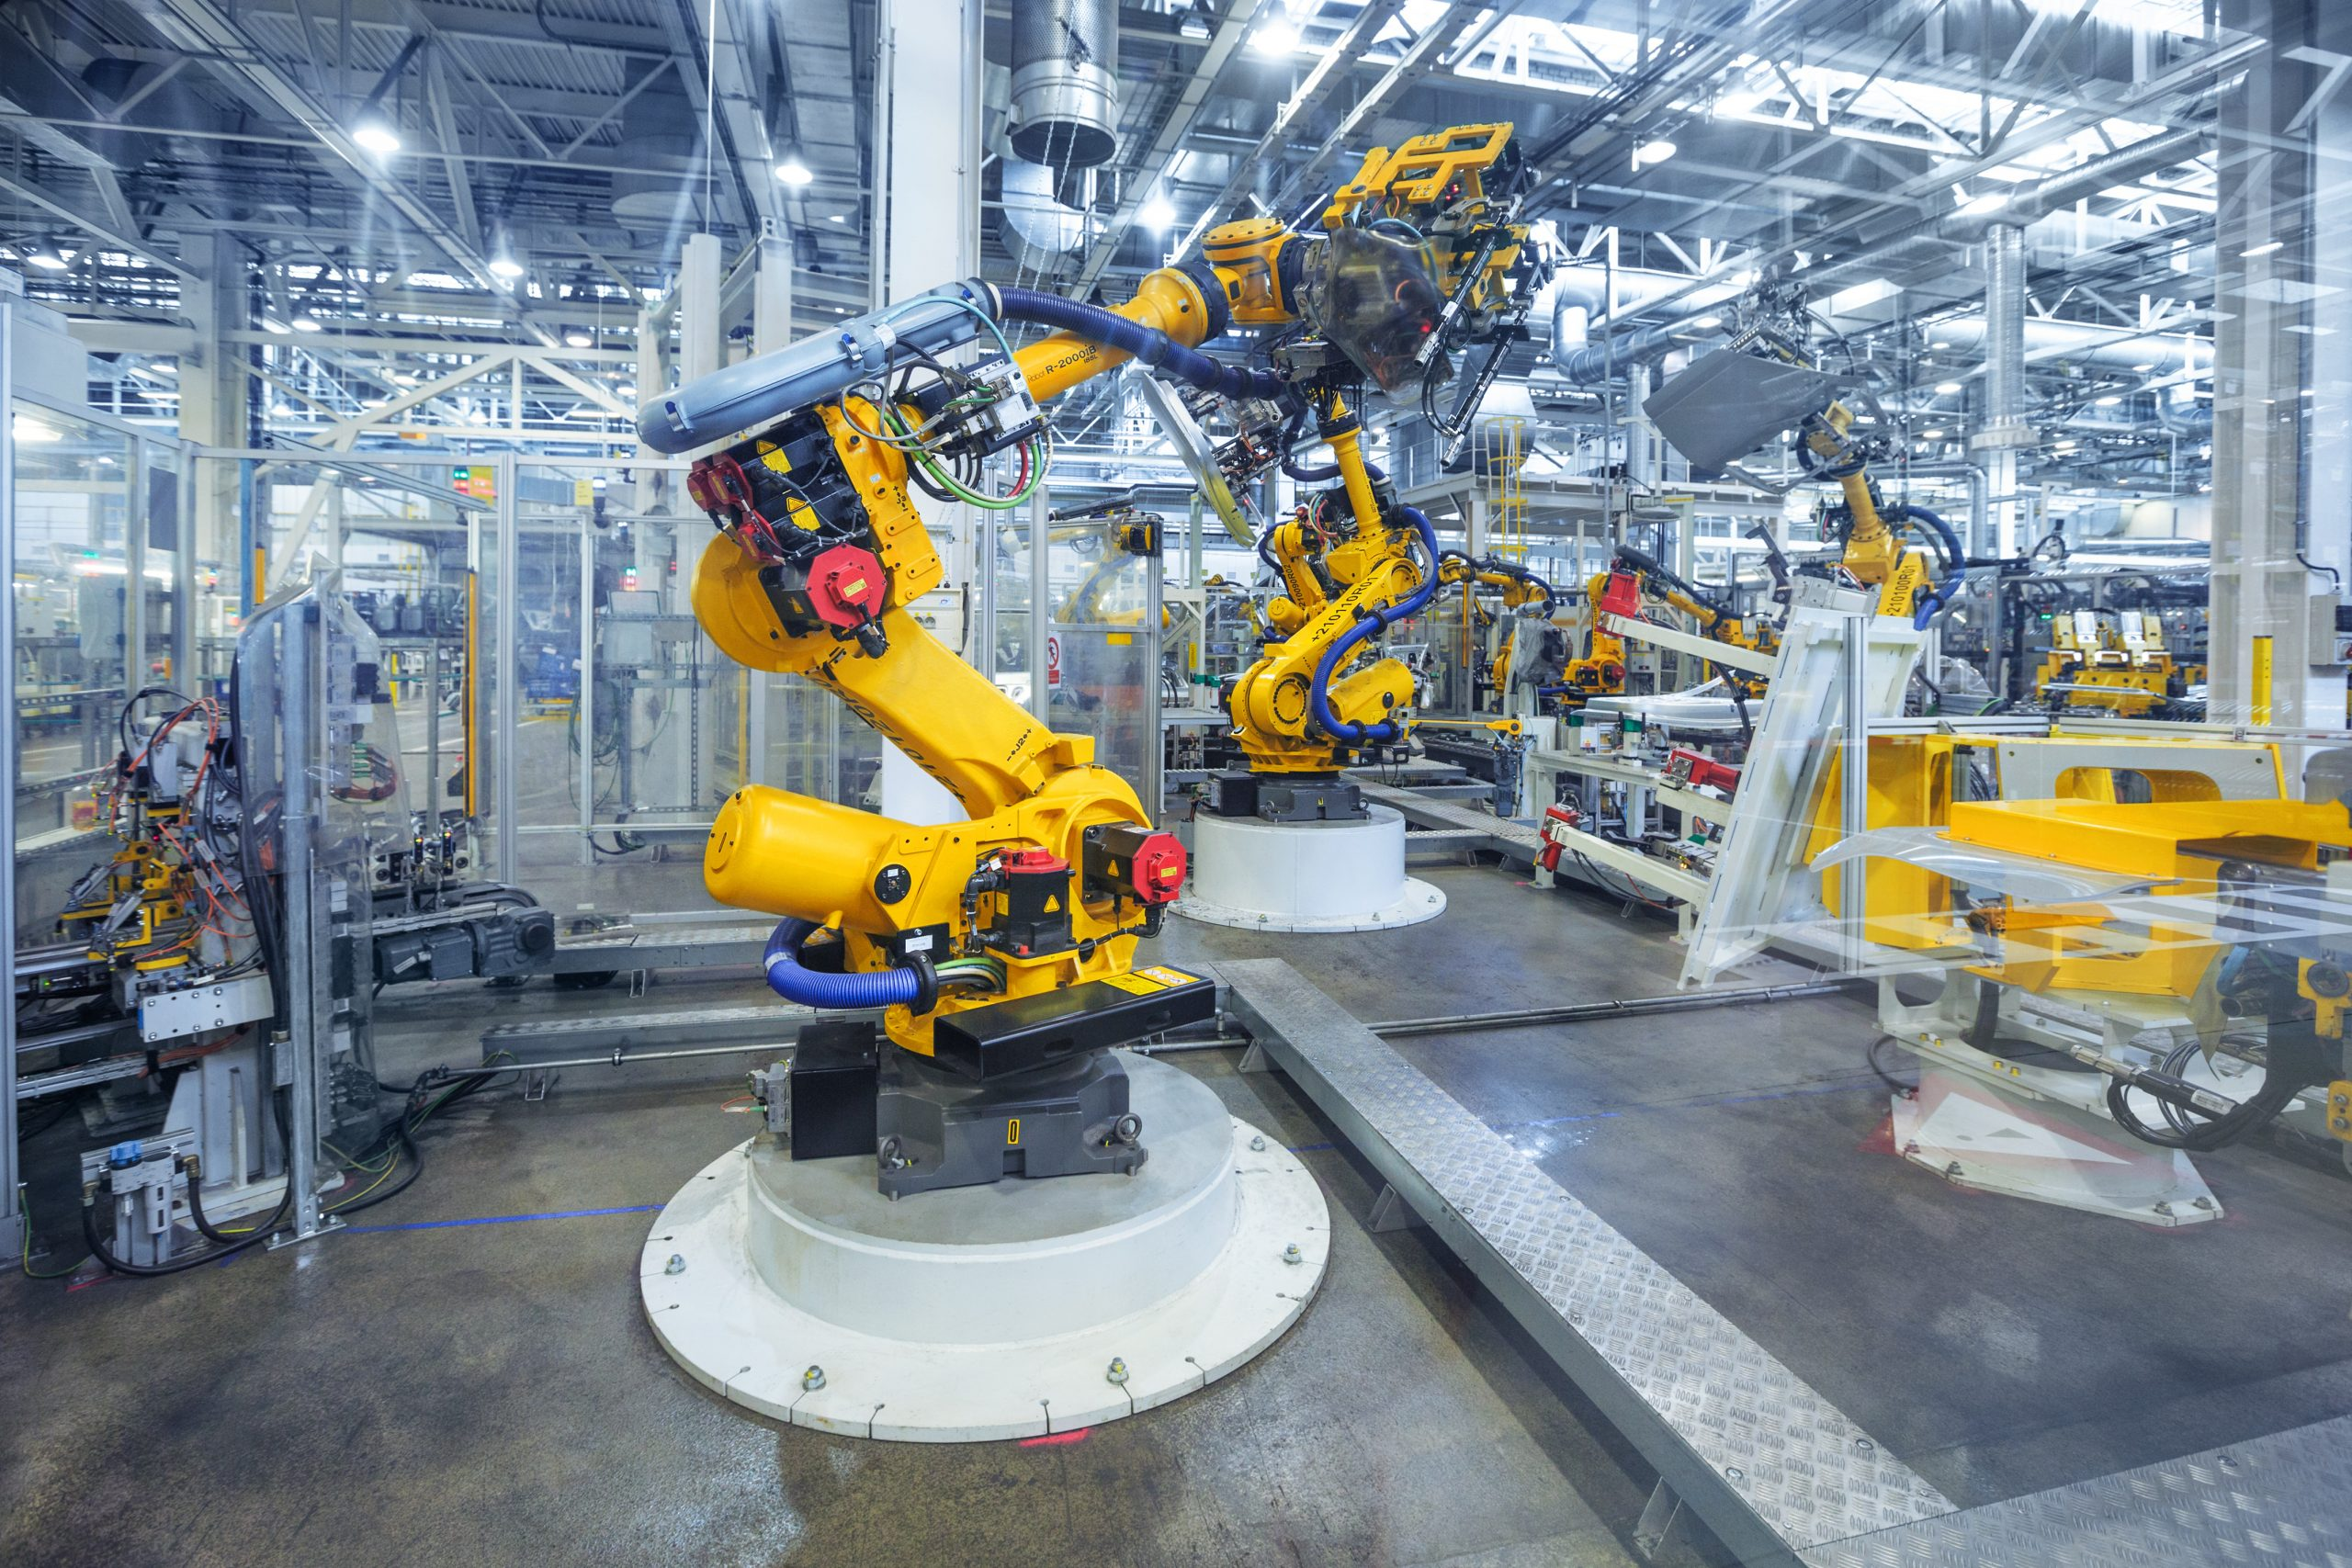 Robotic Arm for Automotive Industry Works in Large Facility